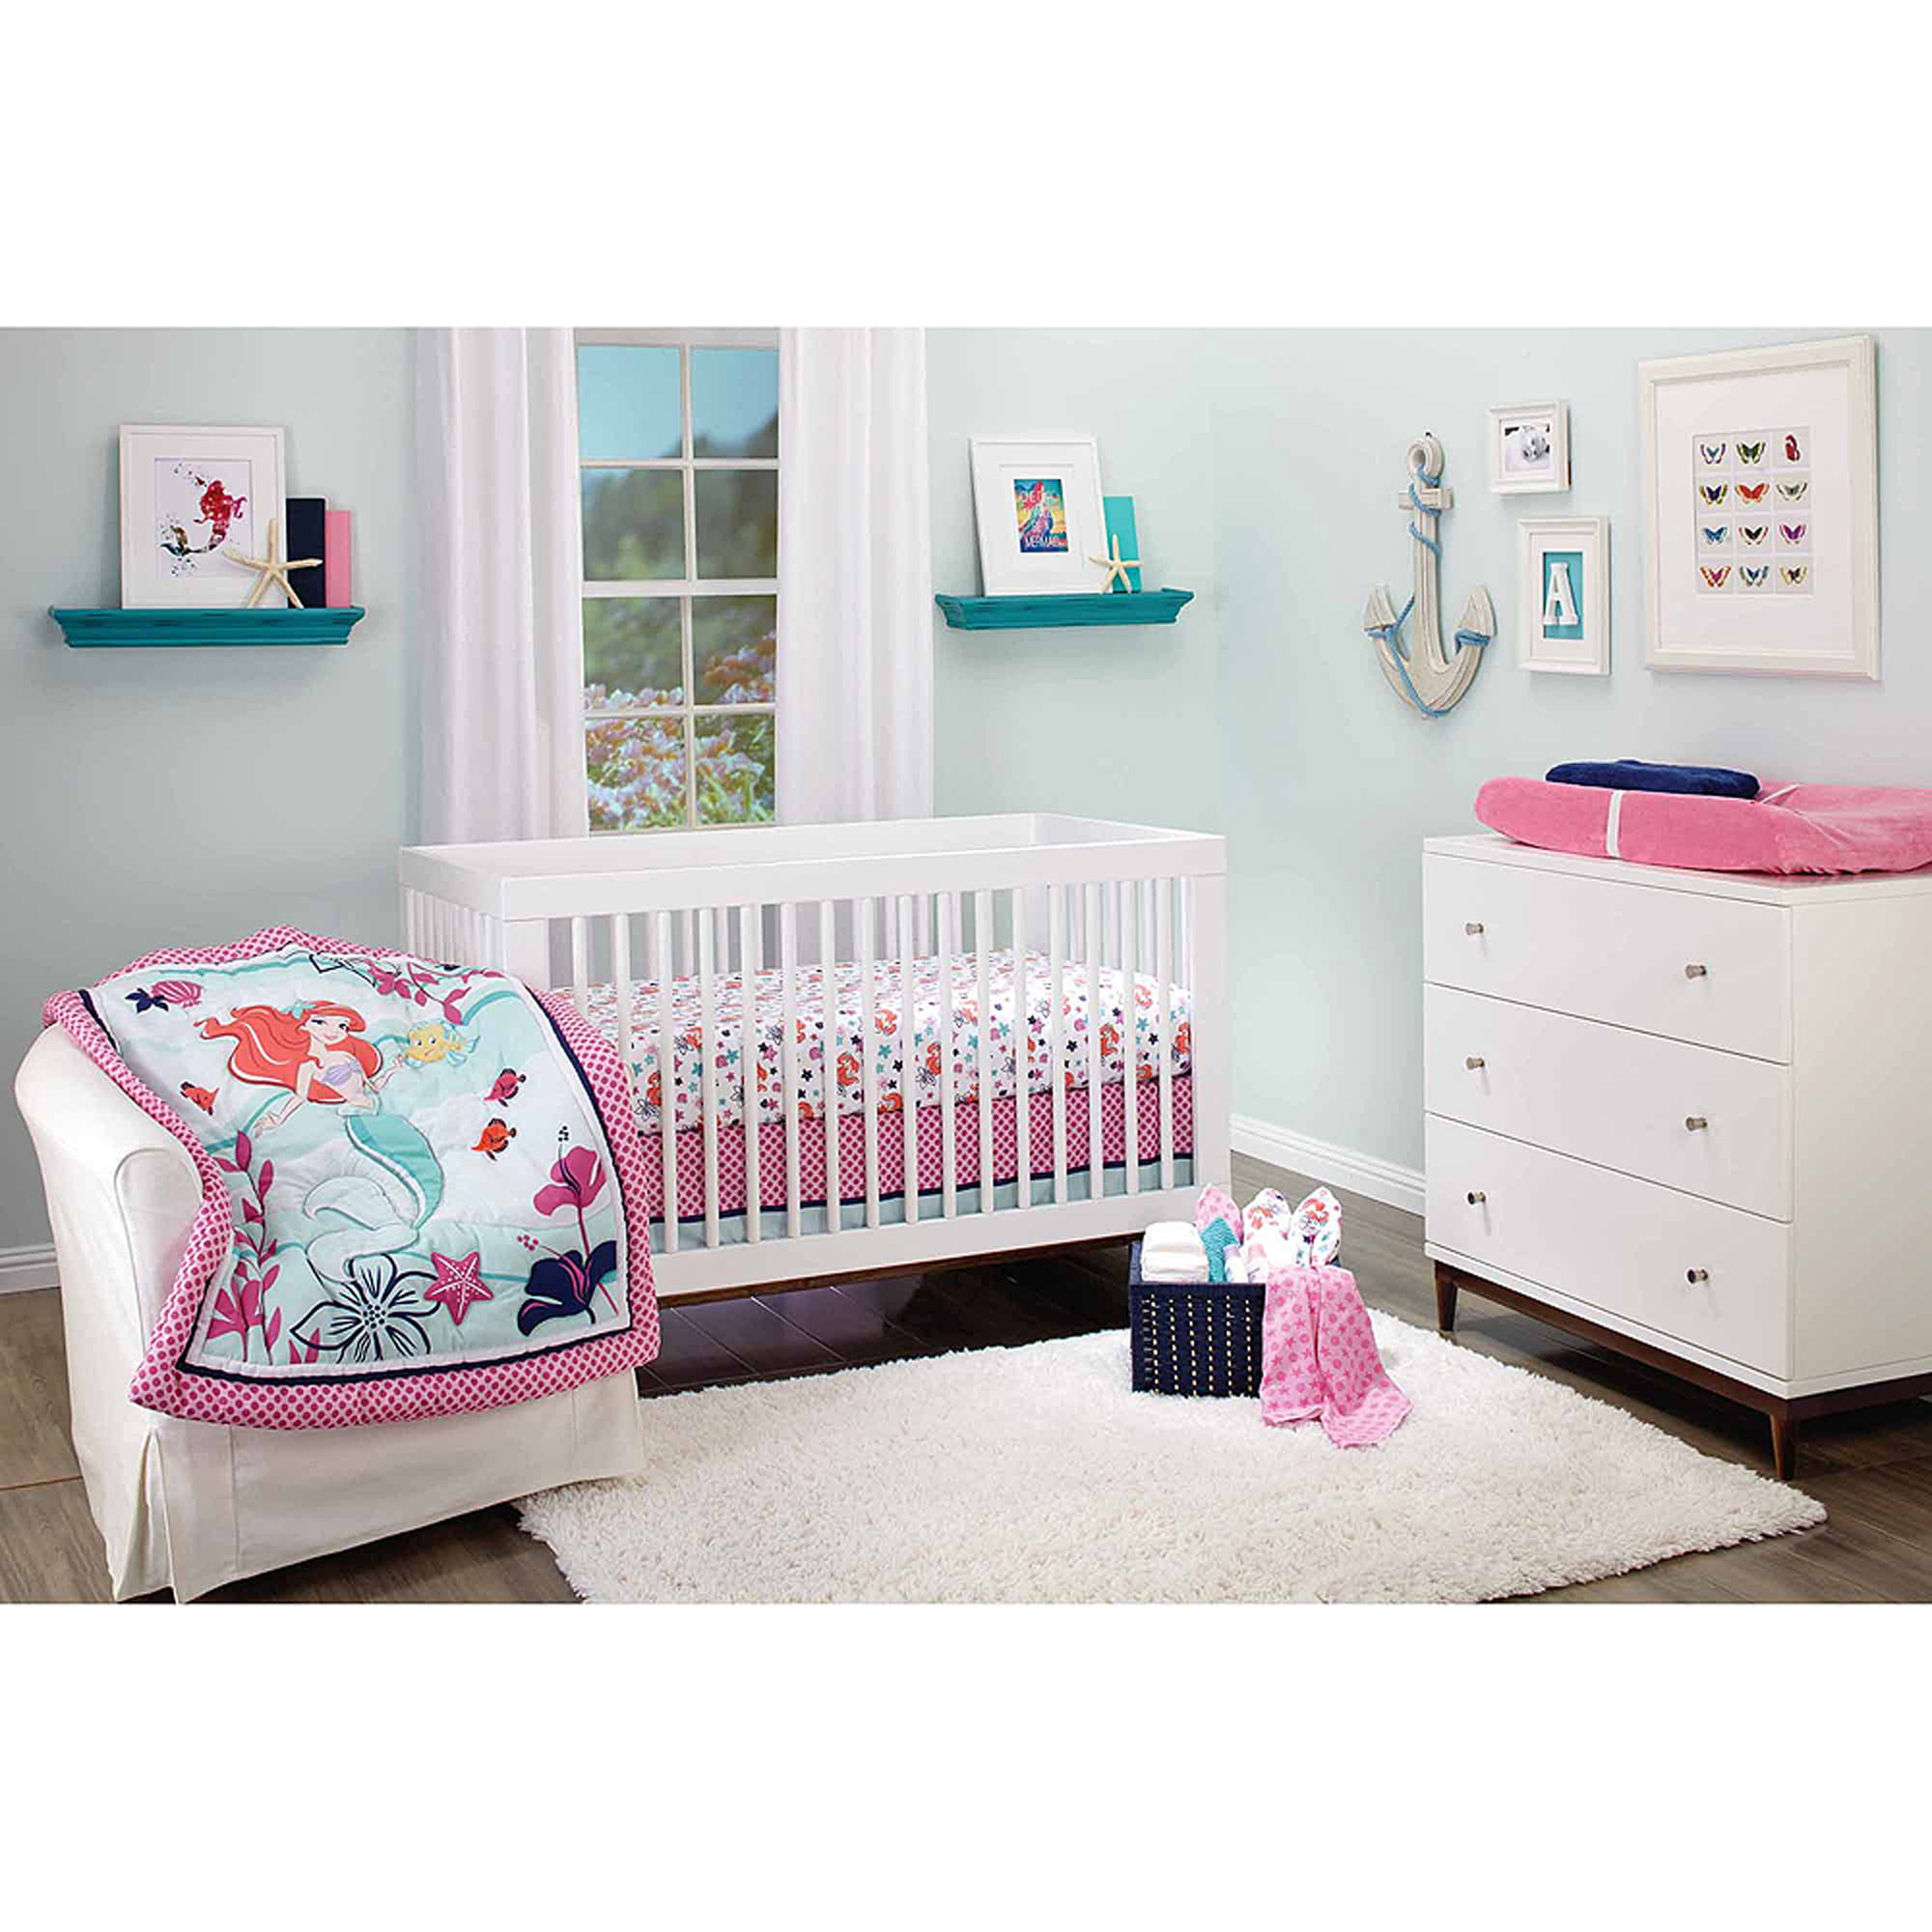 Superior Disney Ariel Sea Treasures 3 Piece Crib Bedding Set   Walmart.com